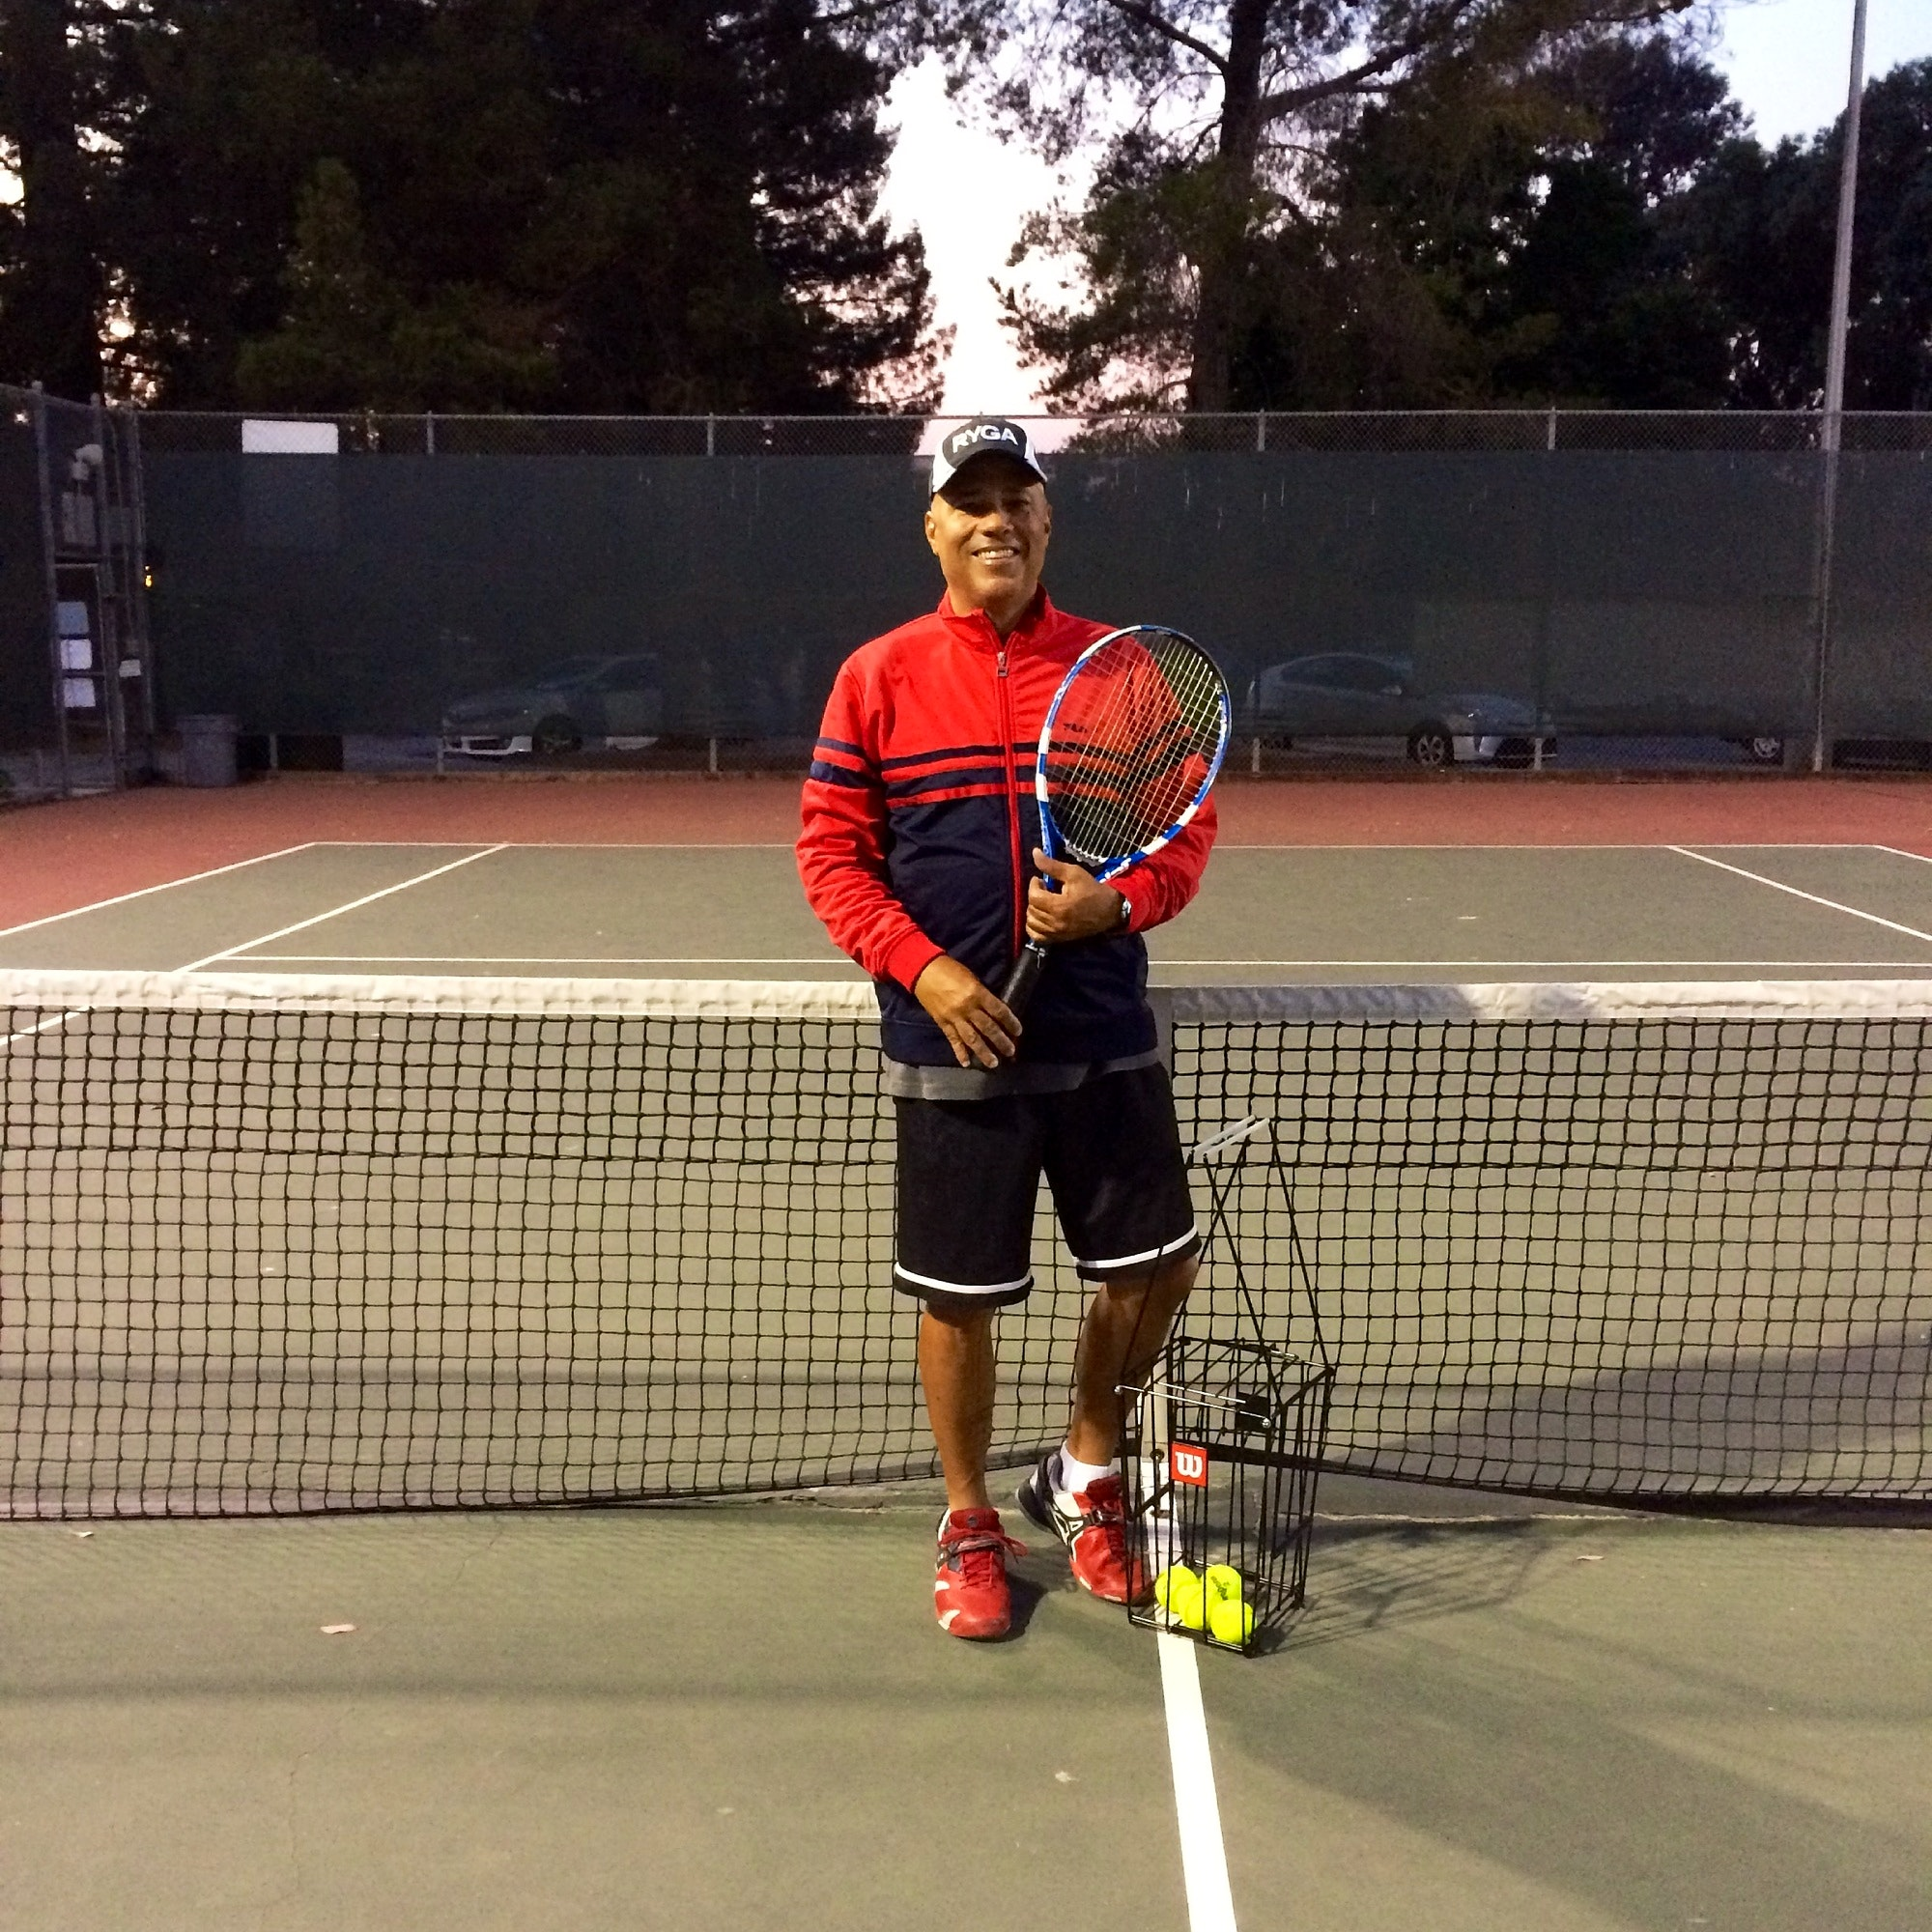 Kevin G. teaches tennis lessons in Oakland, CA